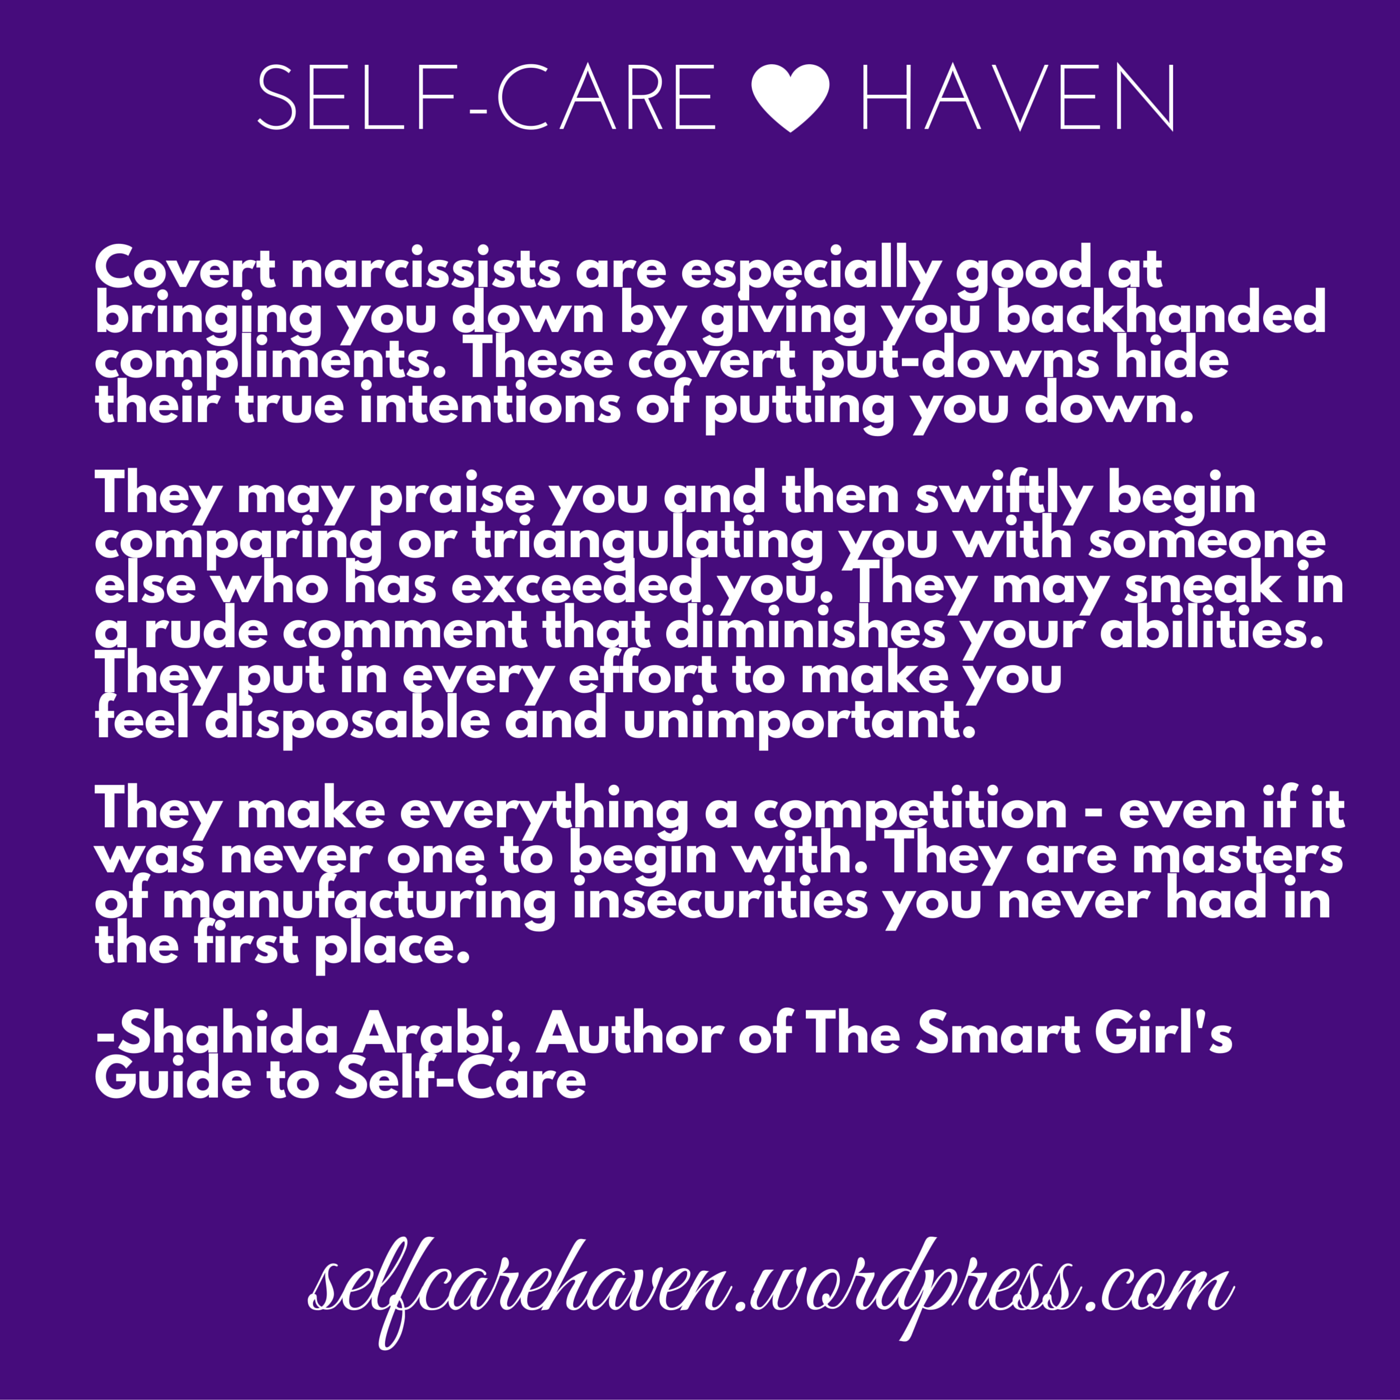 Your Brain on Love, Sex and the Narcissist: The Addiction to Bonding with Our Abusers | Self-Care Haven by Shahida Arabi